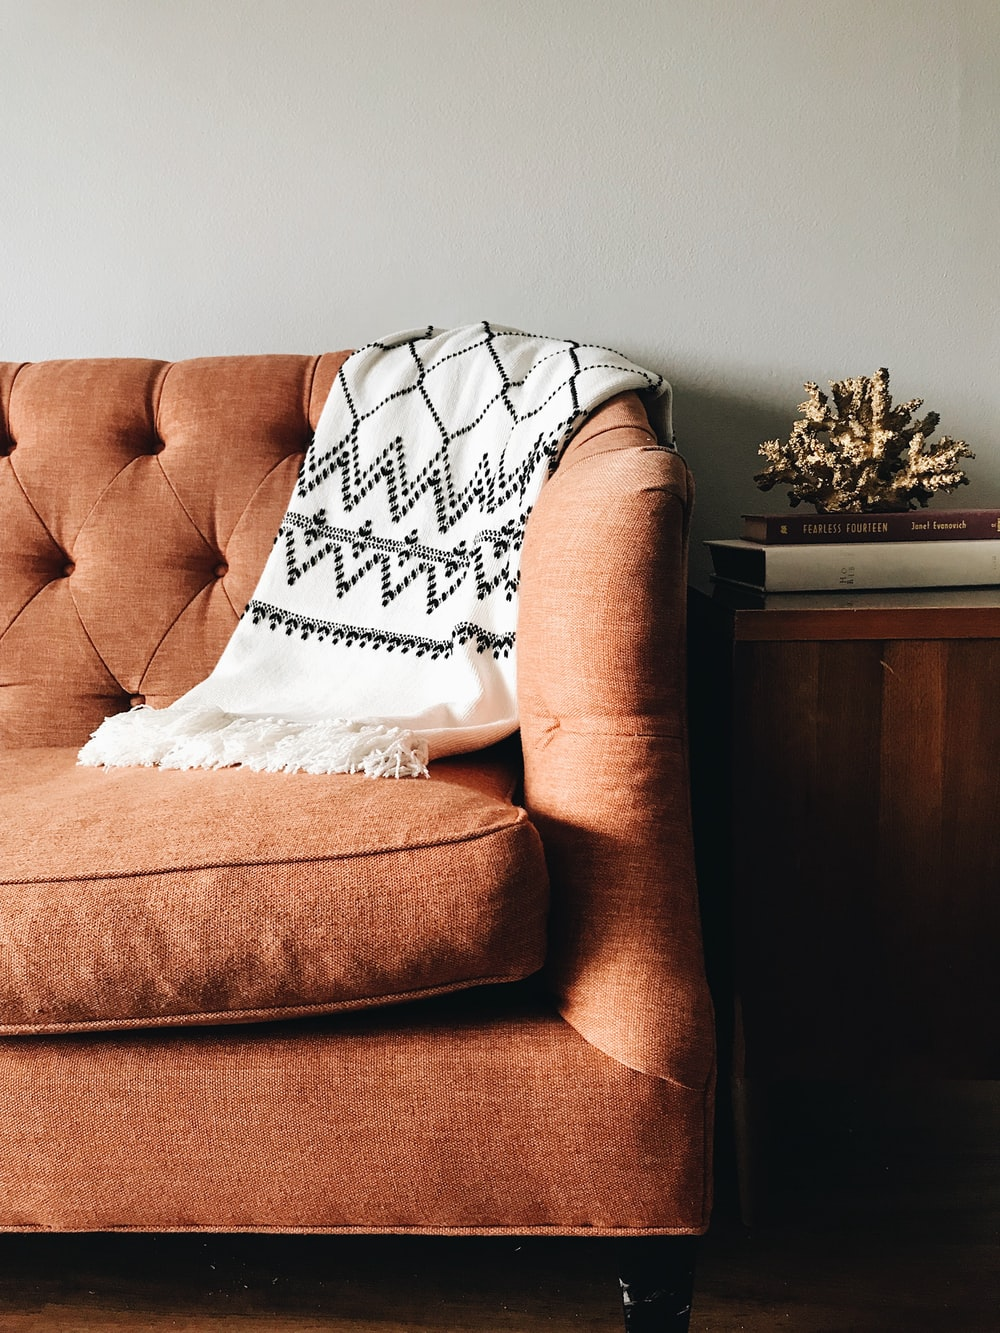 white and black textile on brown couch